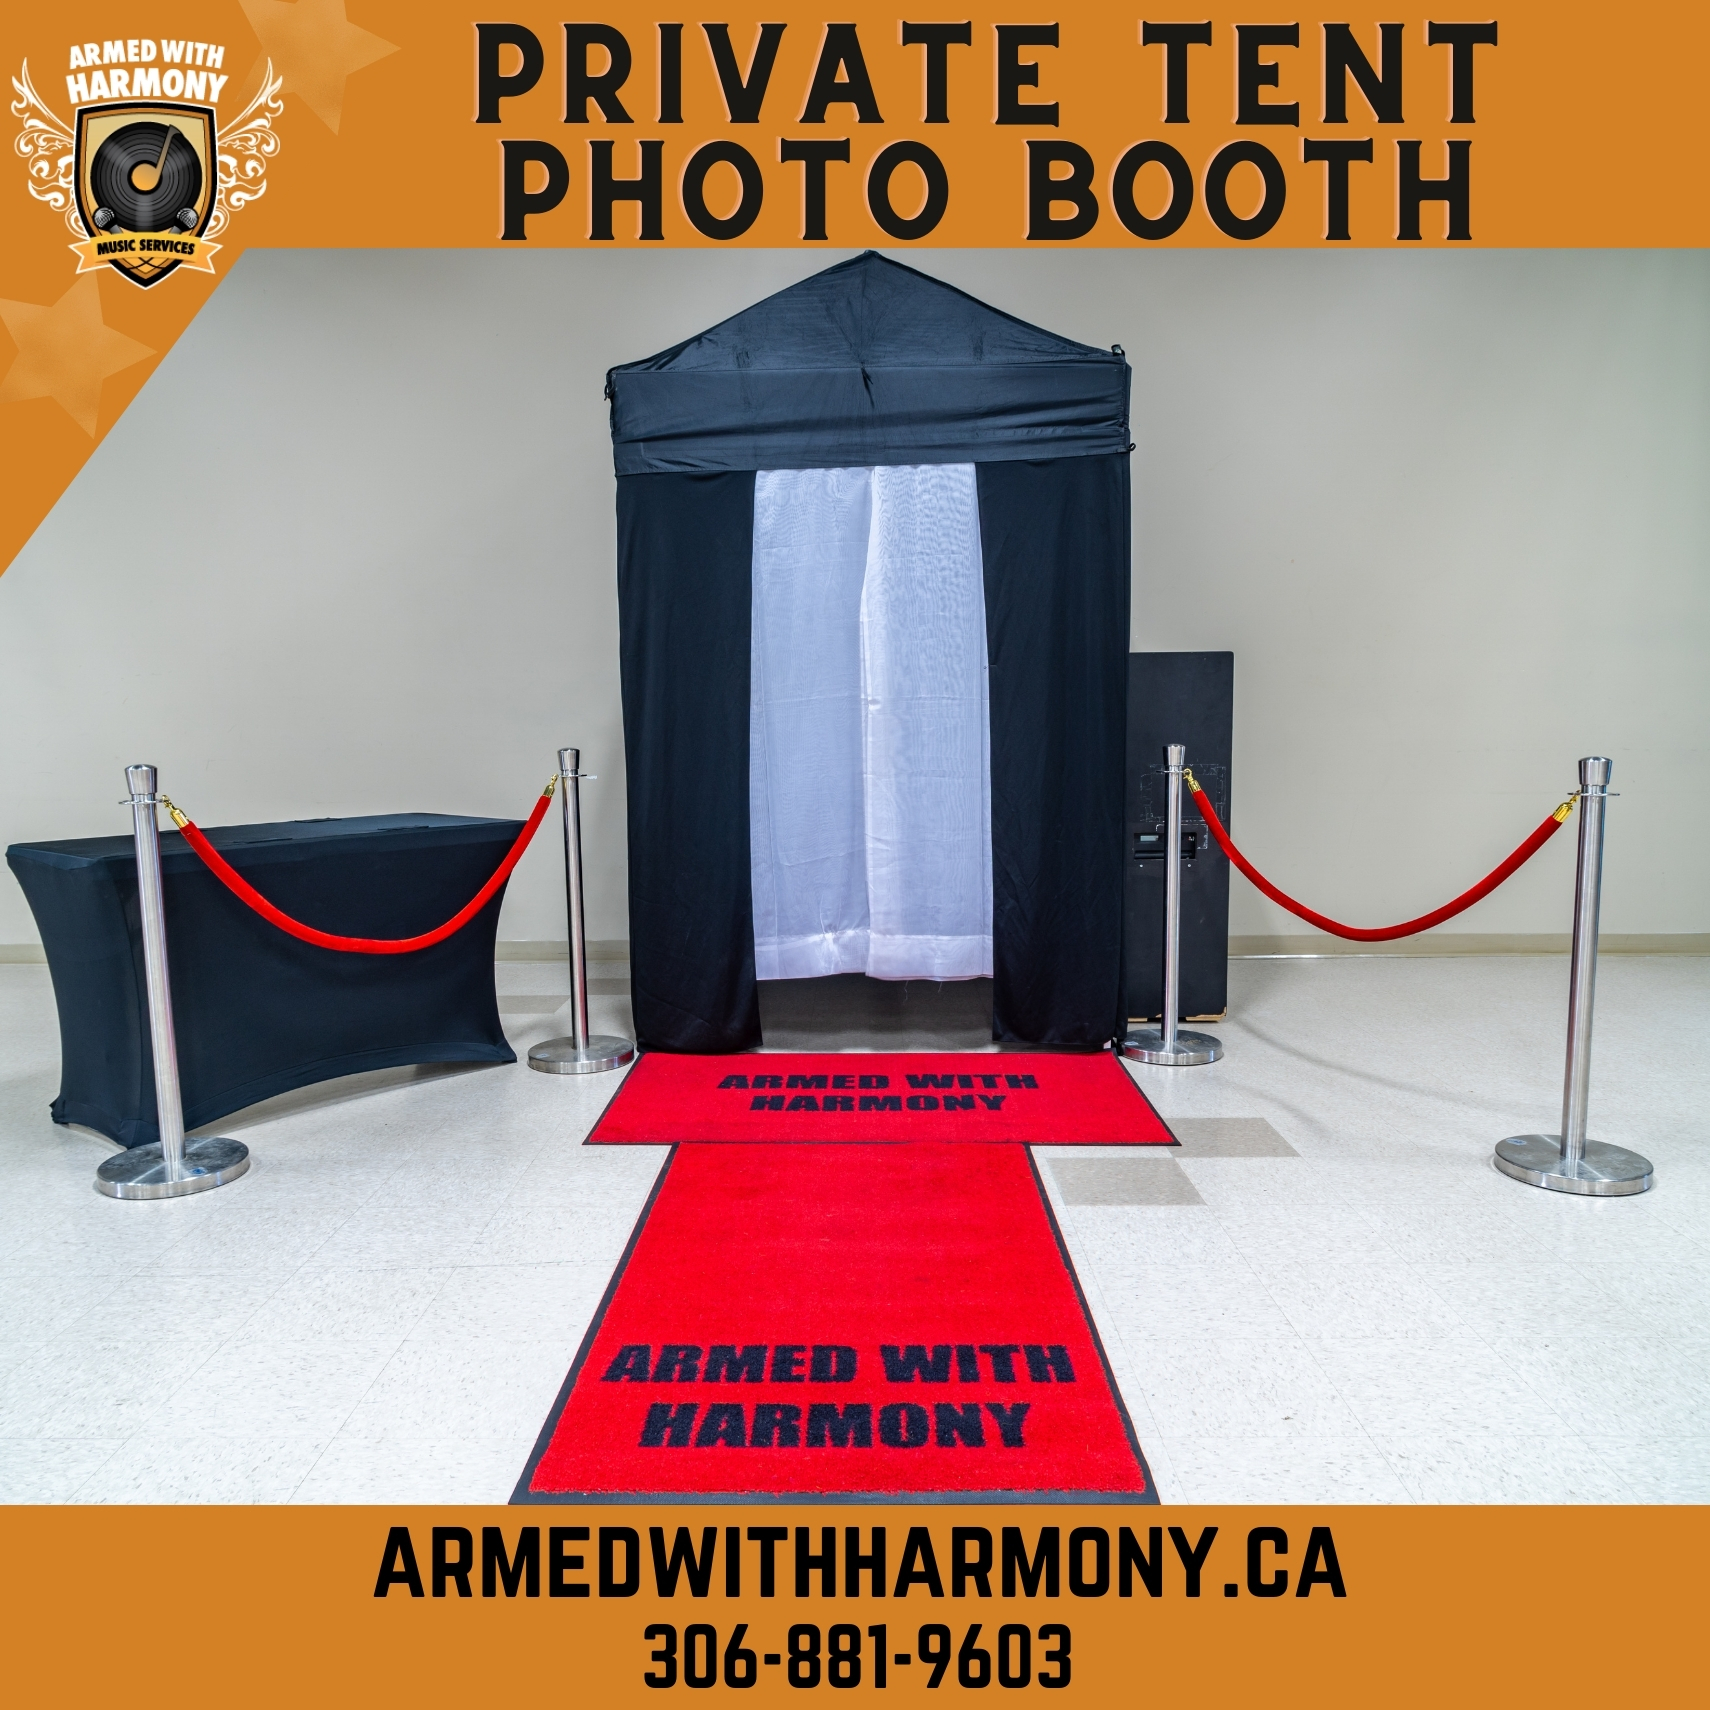 Saskatoon YXE Private Enclosed Tent Photo Booth Rentals Private Enclosed Tent Photo Booth